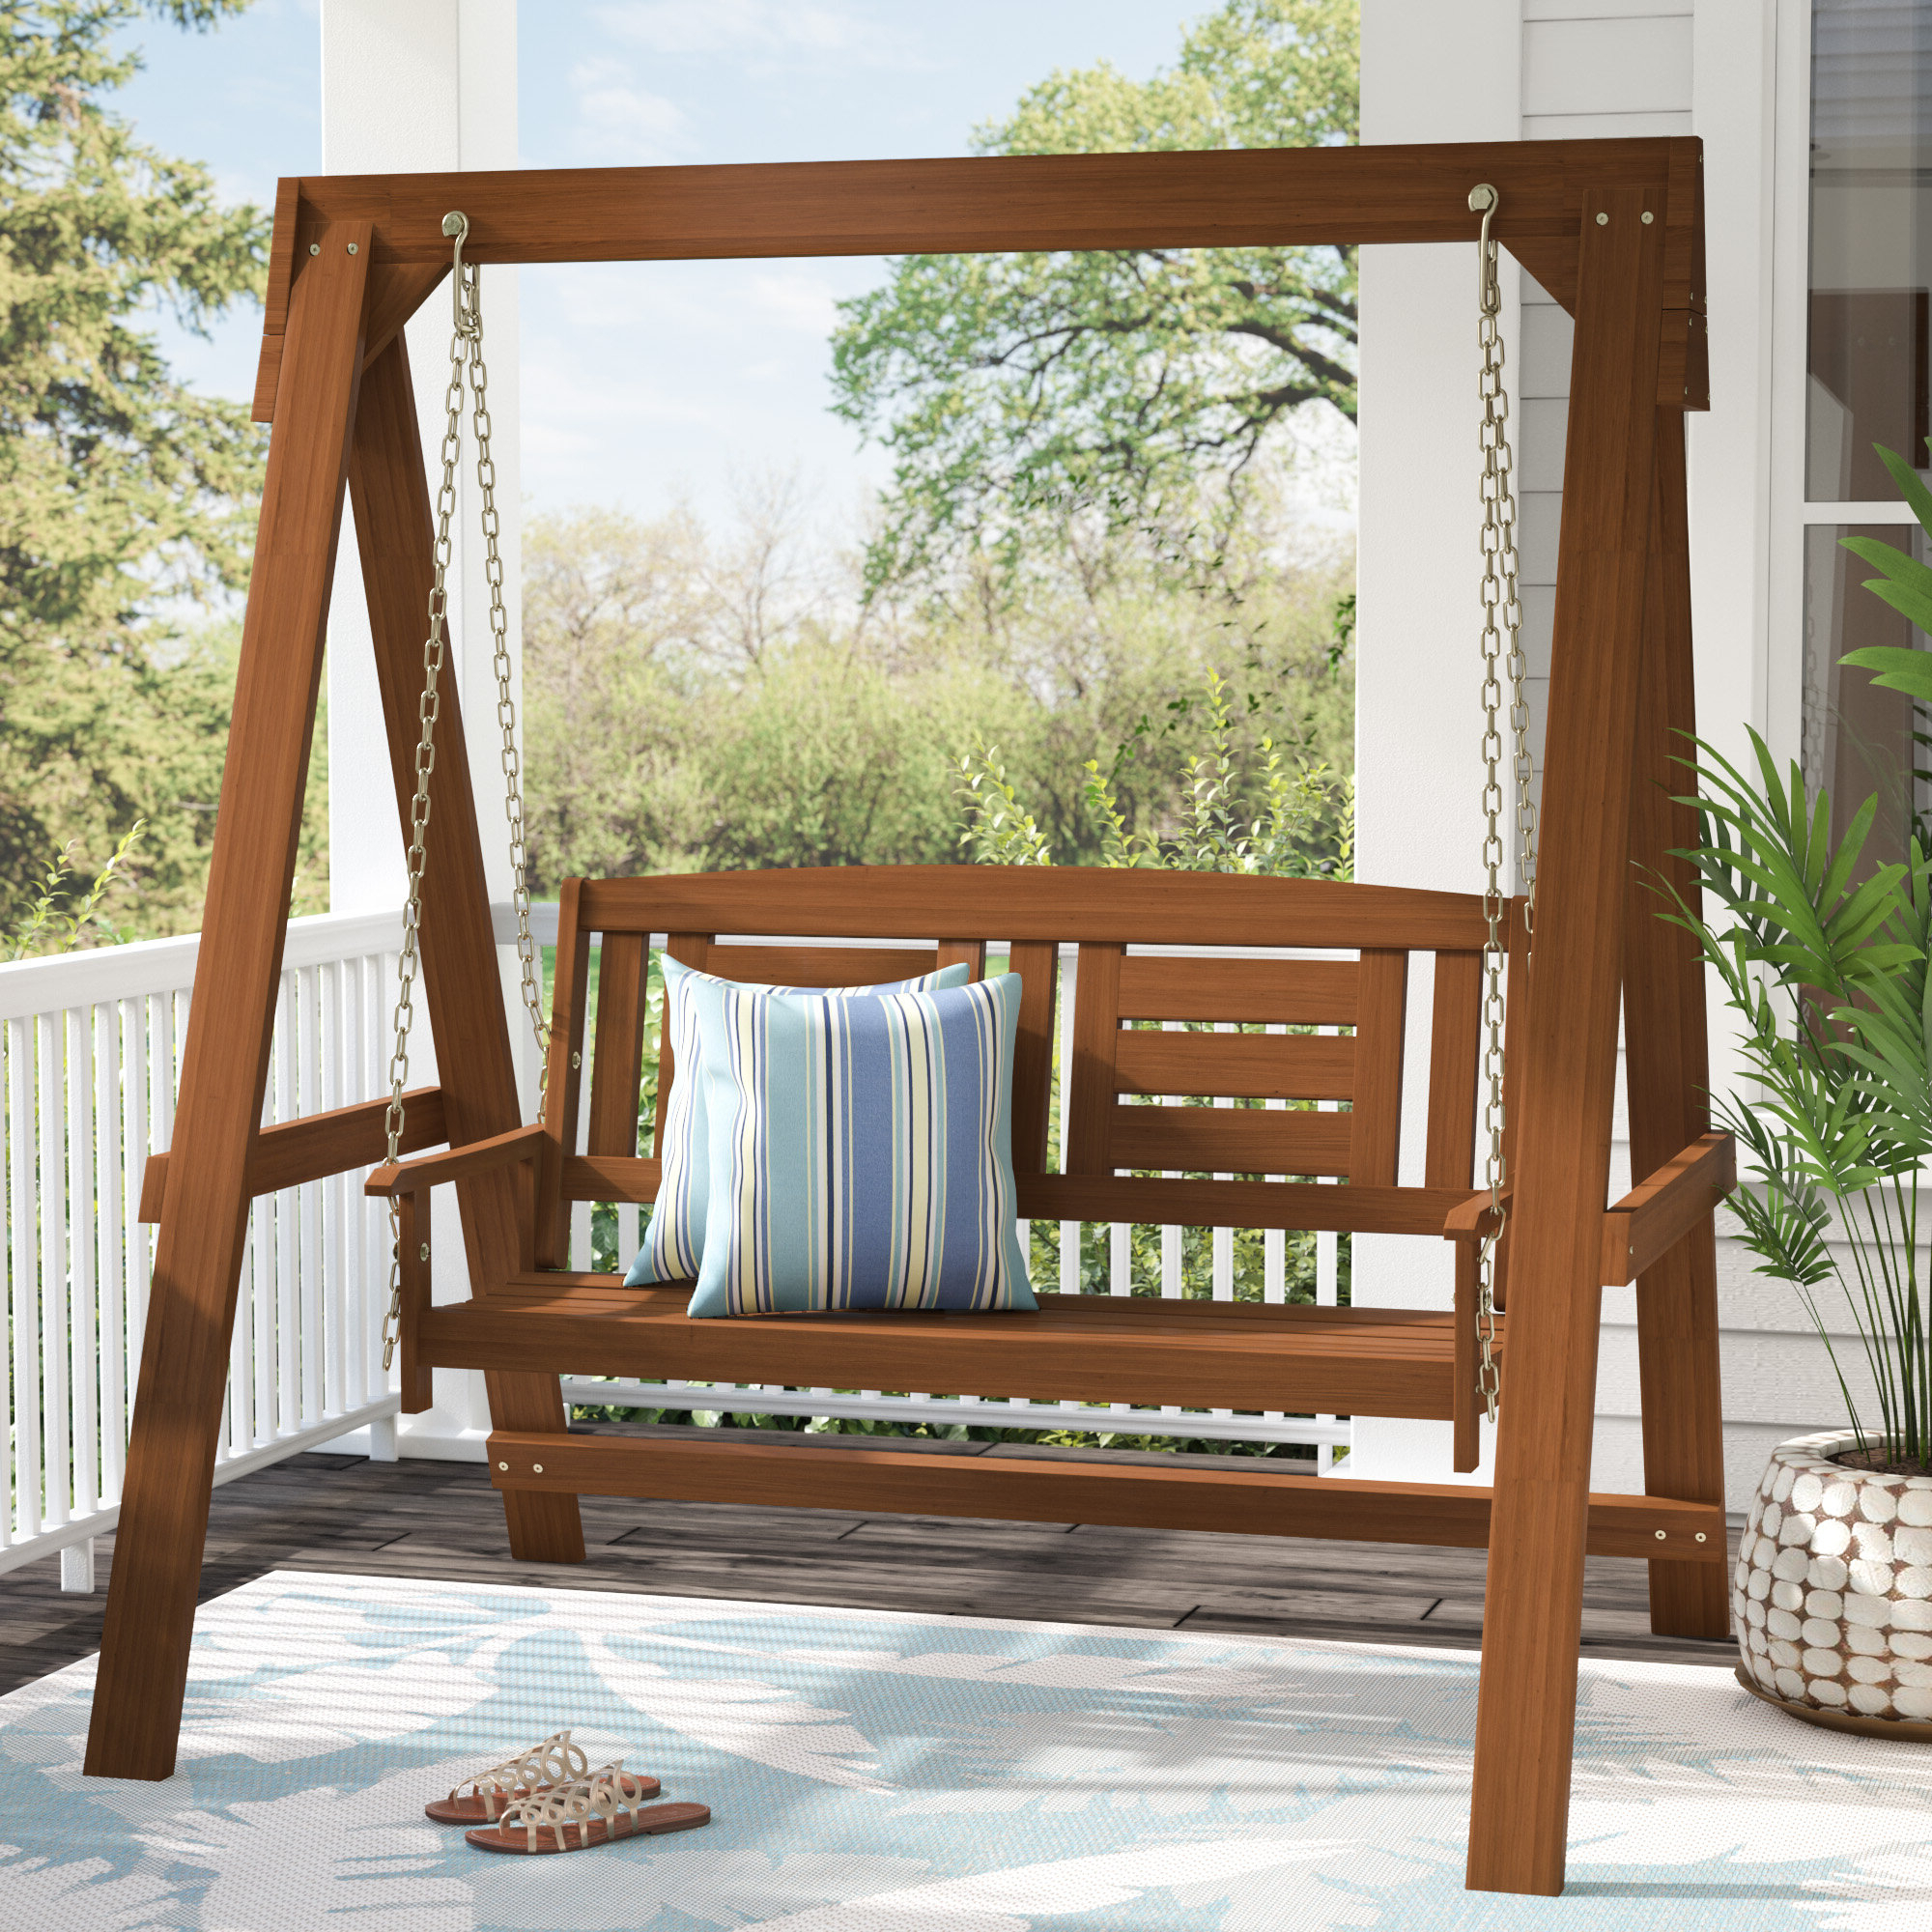 Well Known Hardwood Hanging Porch Swings With Stand With Regard To Arianna Hardwood Hanging Porch Swing With Stand (View 9 of 25)